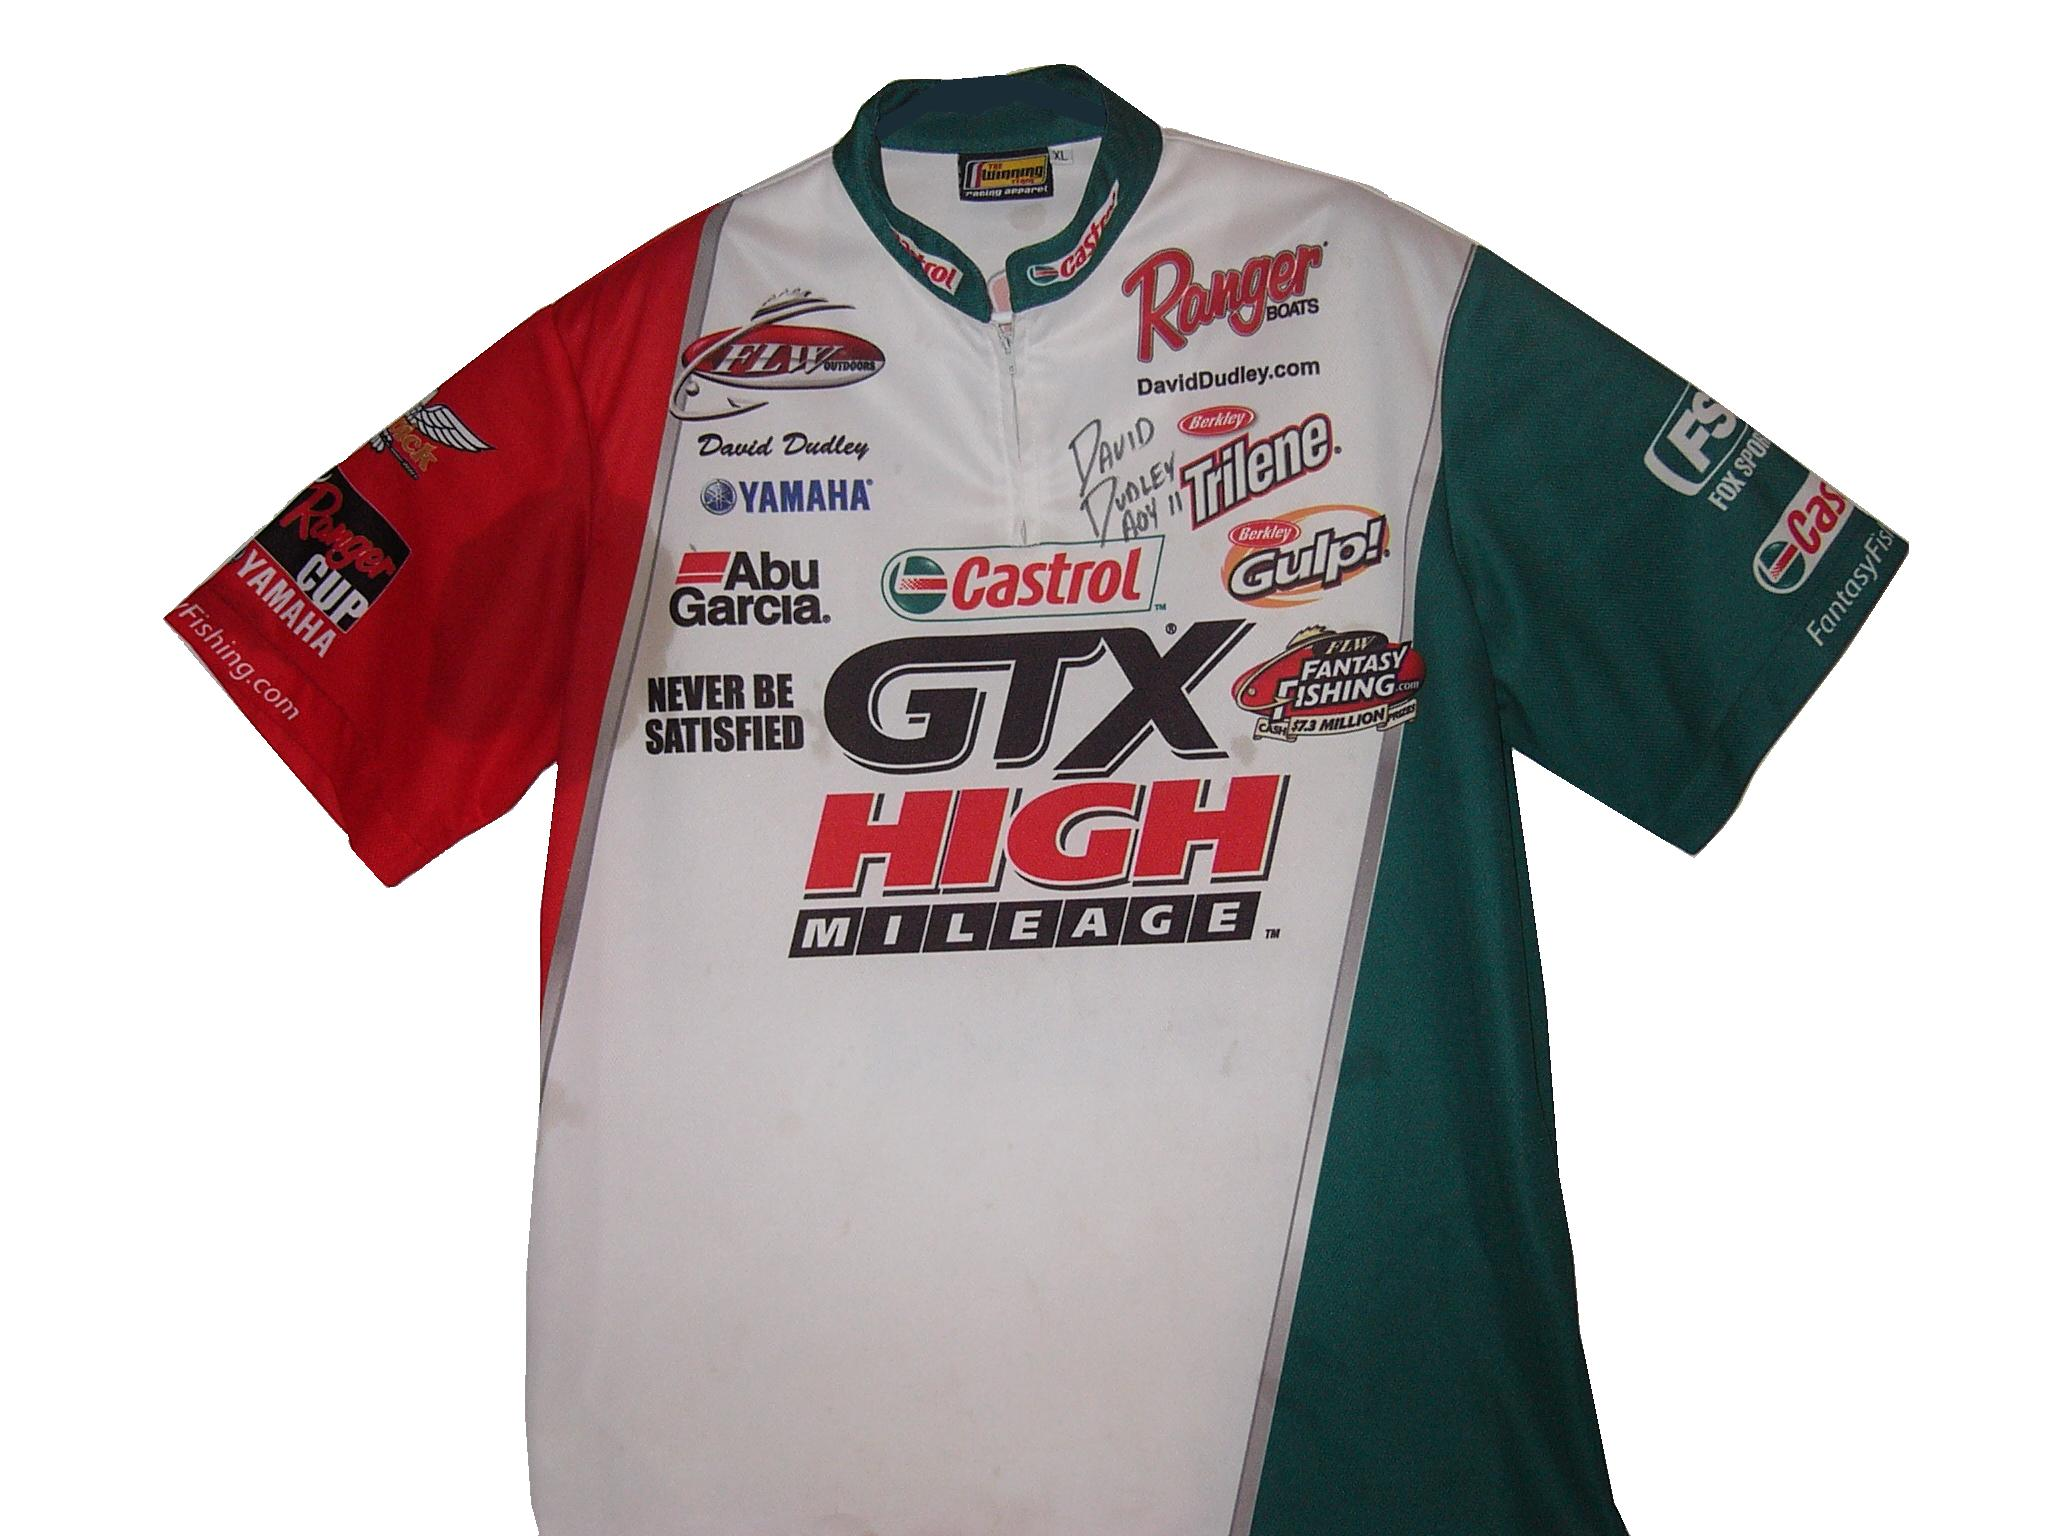 Fishing bait ideas on pinterest fishing shirt designs for Rayjus fishing jerseys